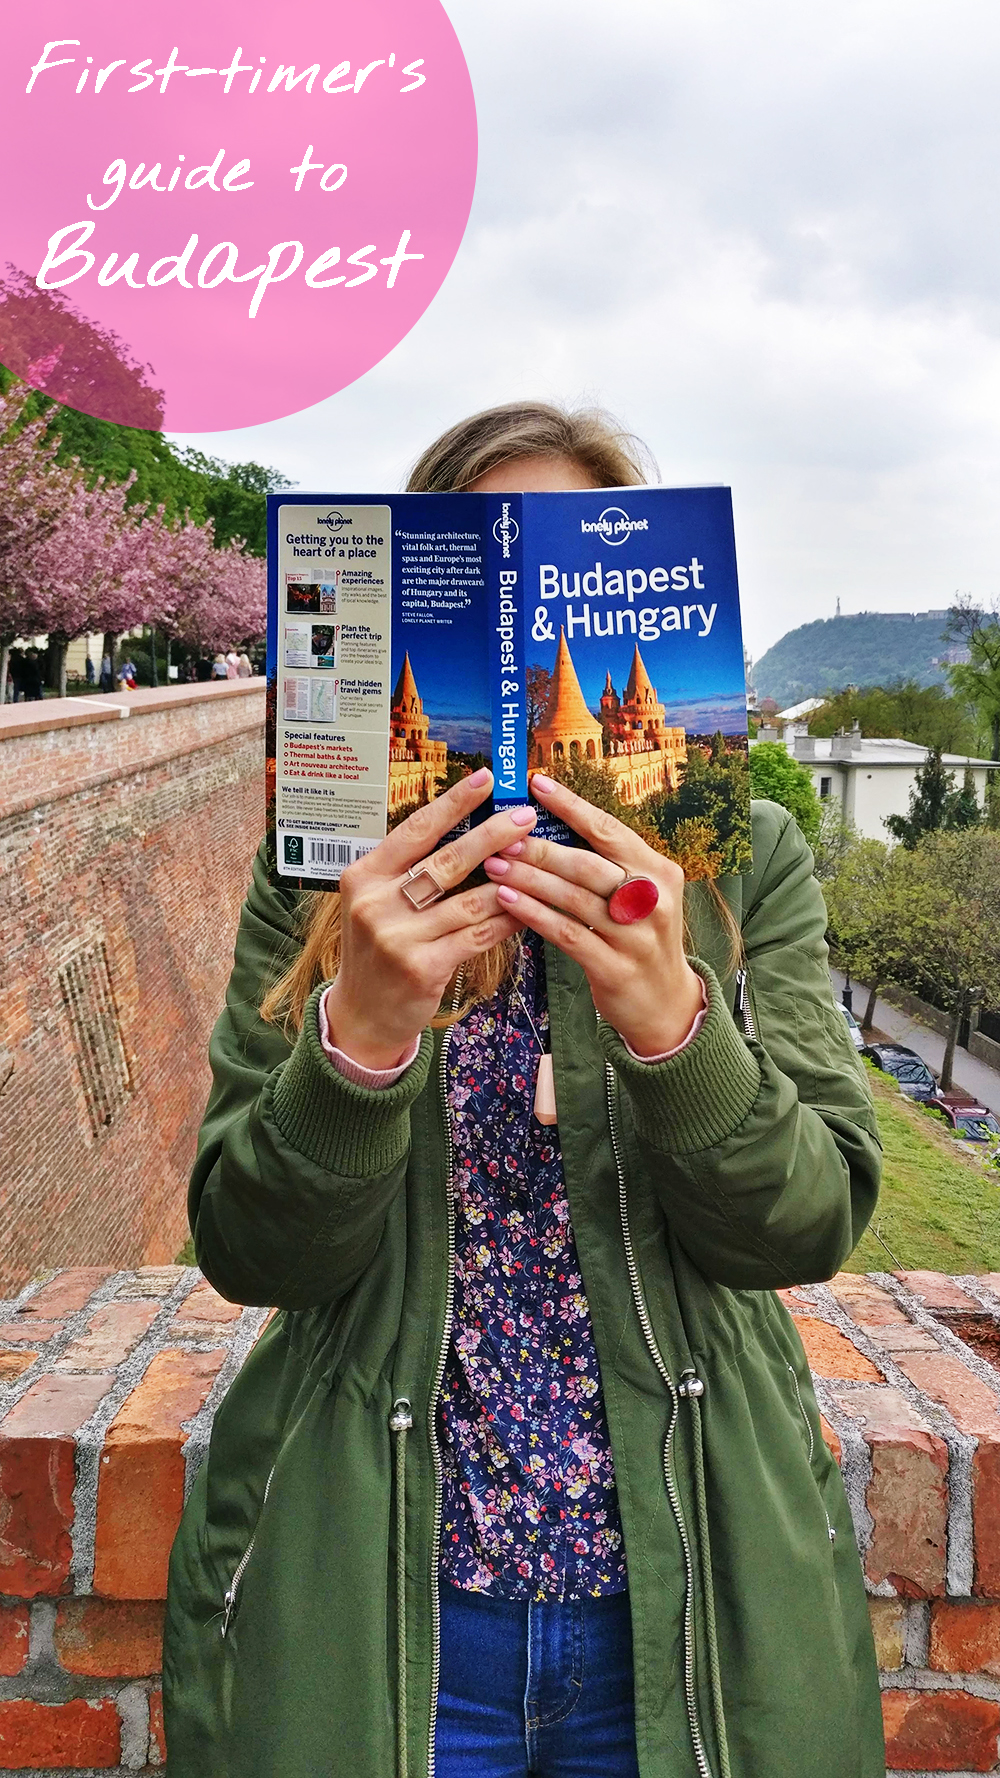 A first-timer's guide to Budapest - Things to know about visiting Budapest, Hungary | Aliz's Wonderland #Budapest #Hungary #travel #travelguide #Budapestguide